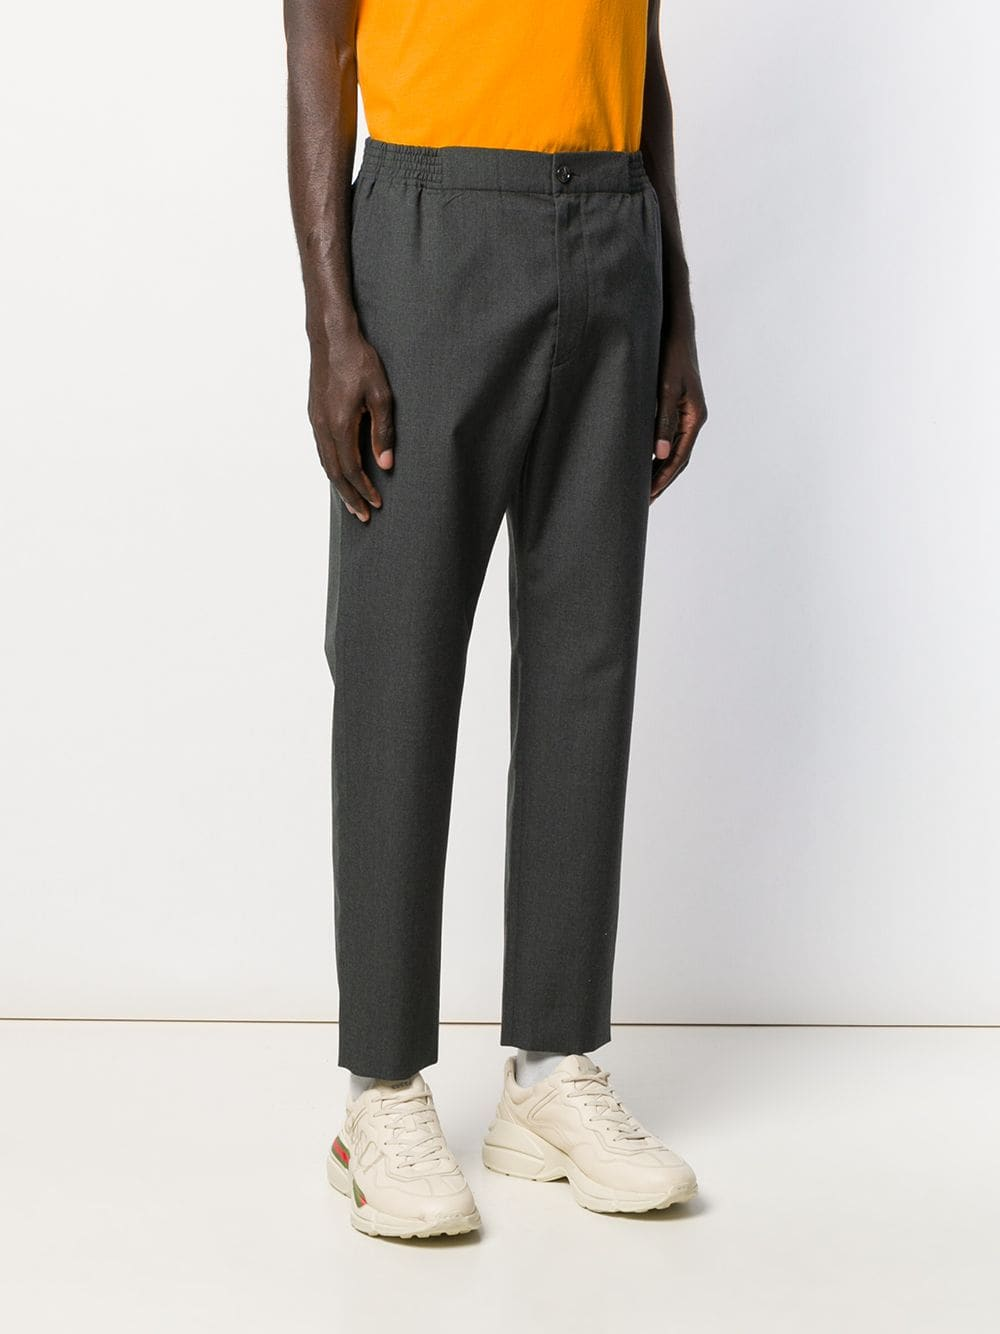 grey wool mid-rise straight leg trousers  GUCCI |  | 568612-ZABW01200